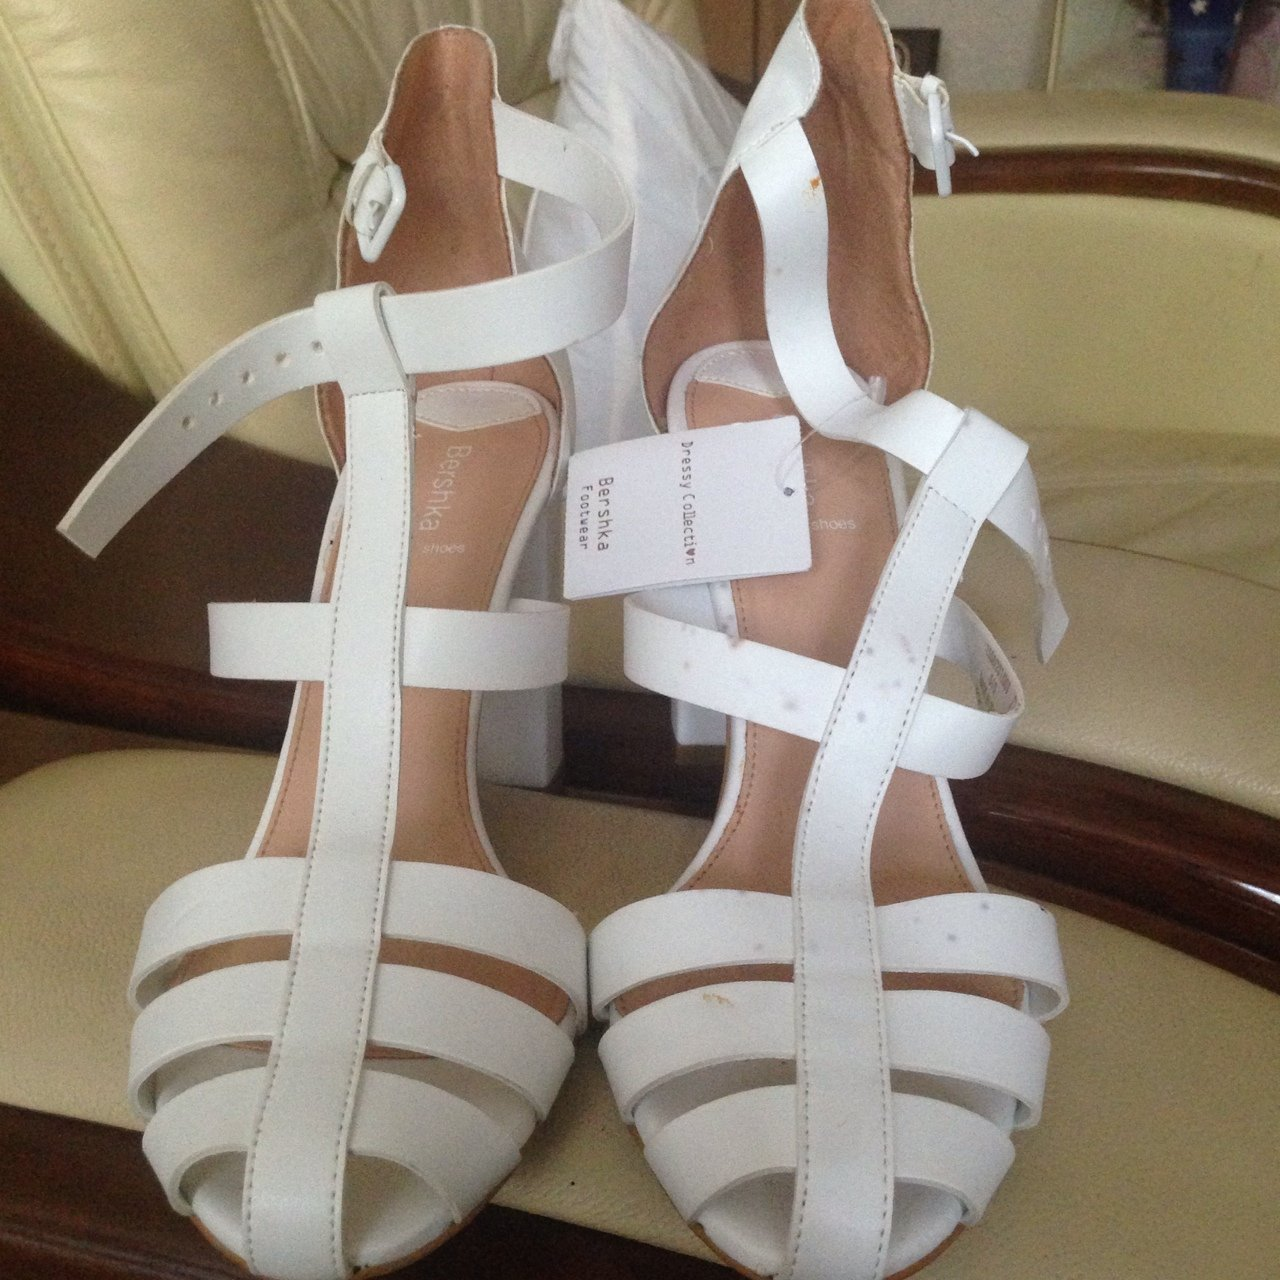 d6fc2e3bc5 Bershka White Caged Sandals 5. The shoes are a bit worn and - Depop